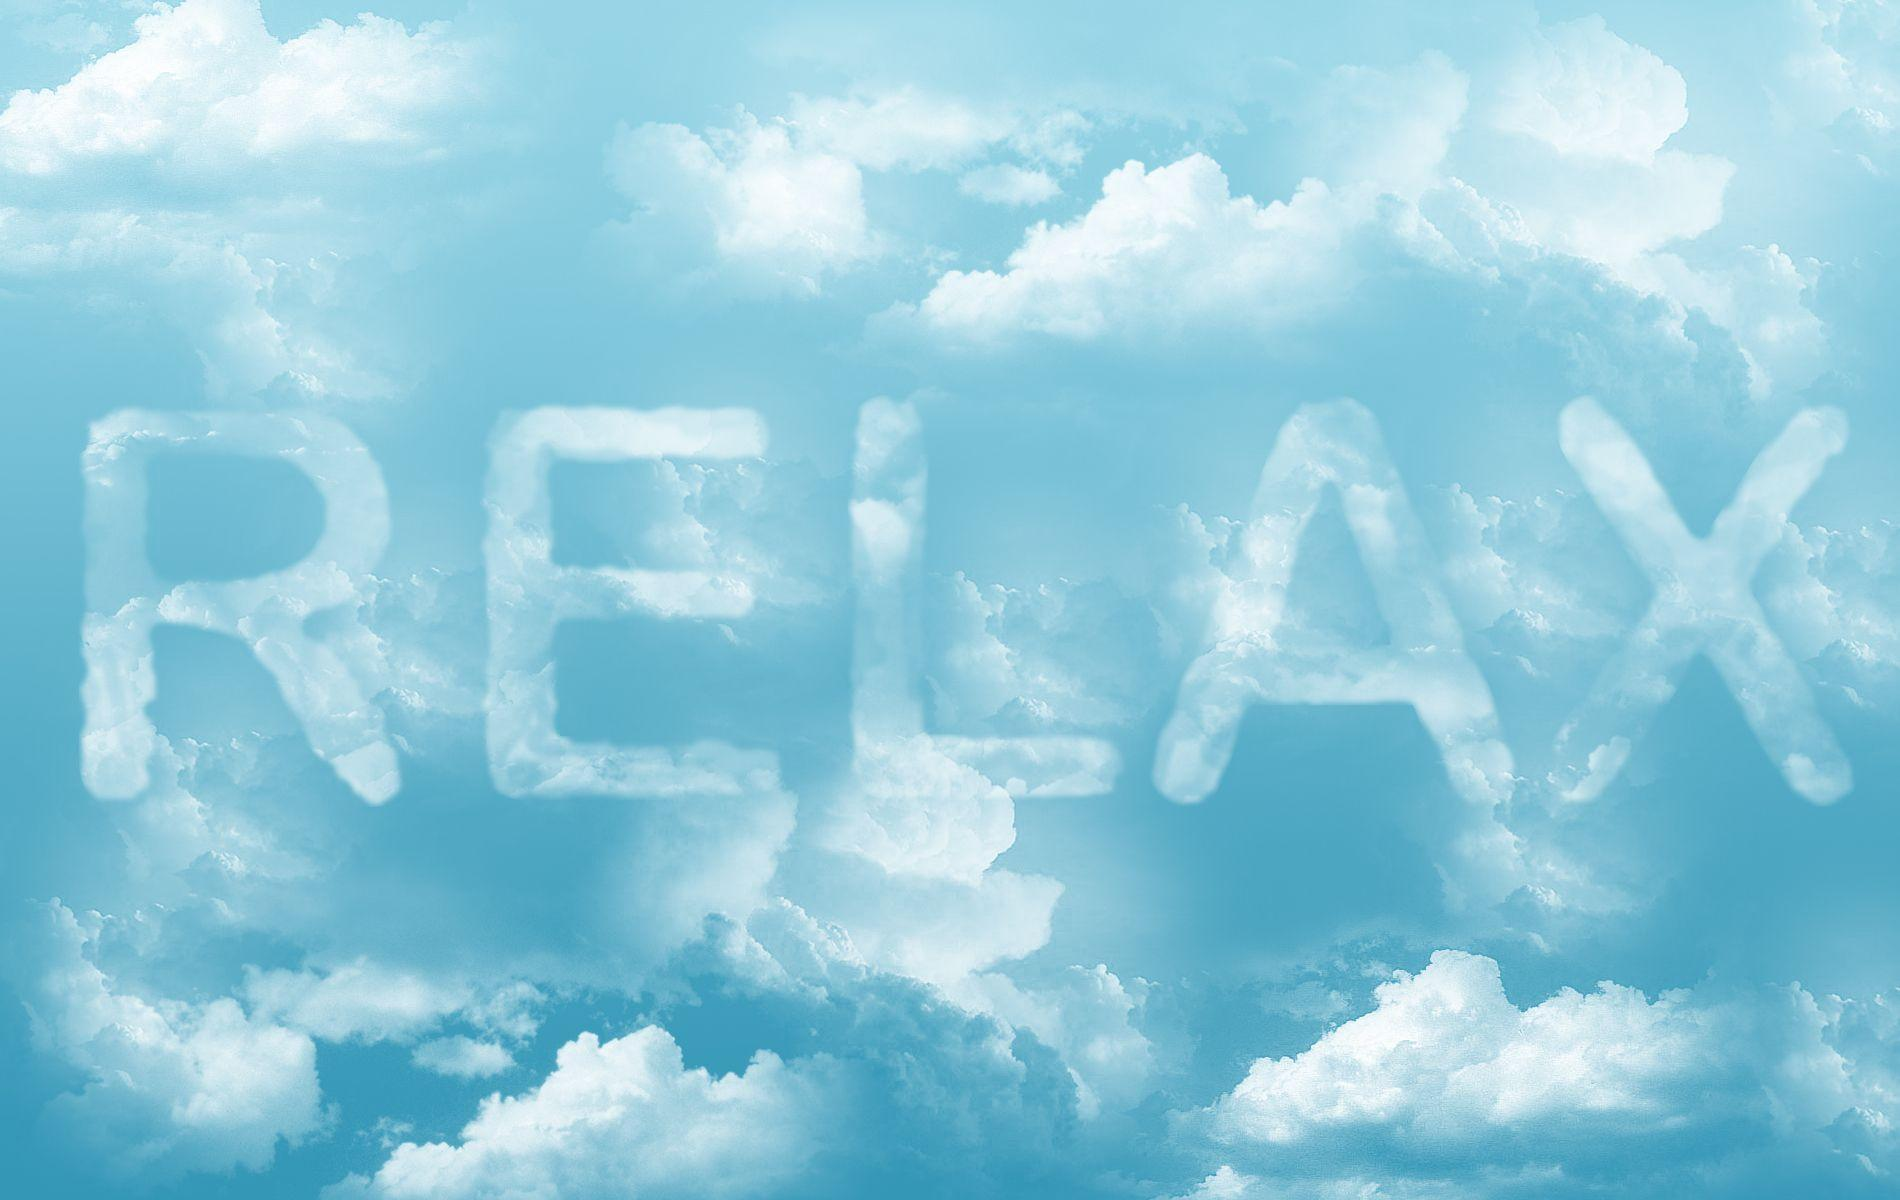 relaxing pc background - photo #17